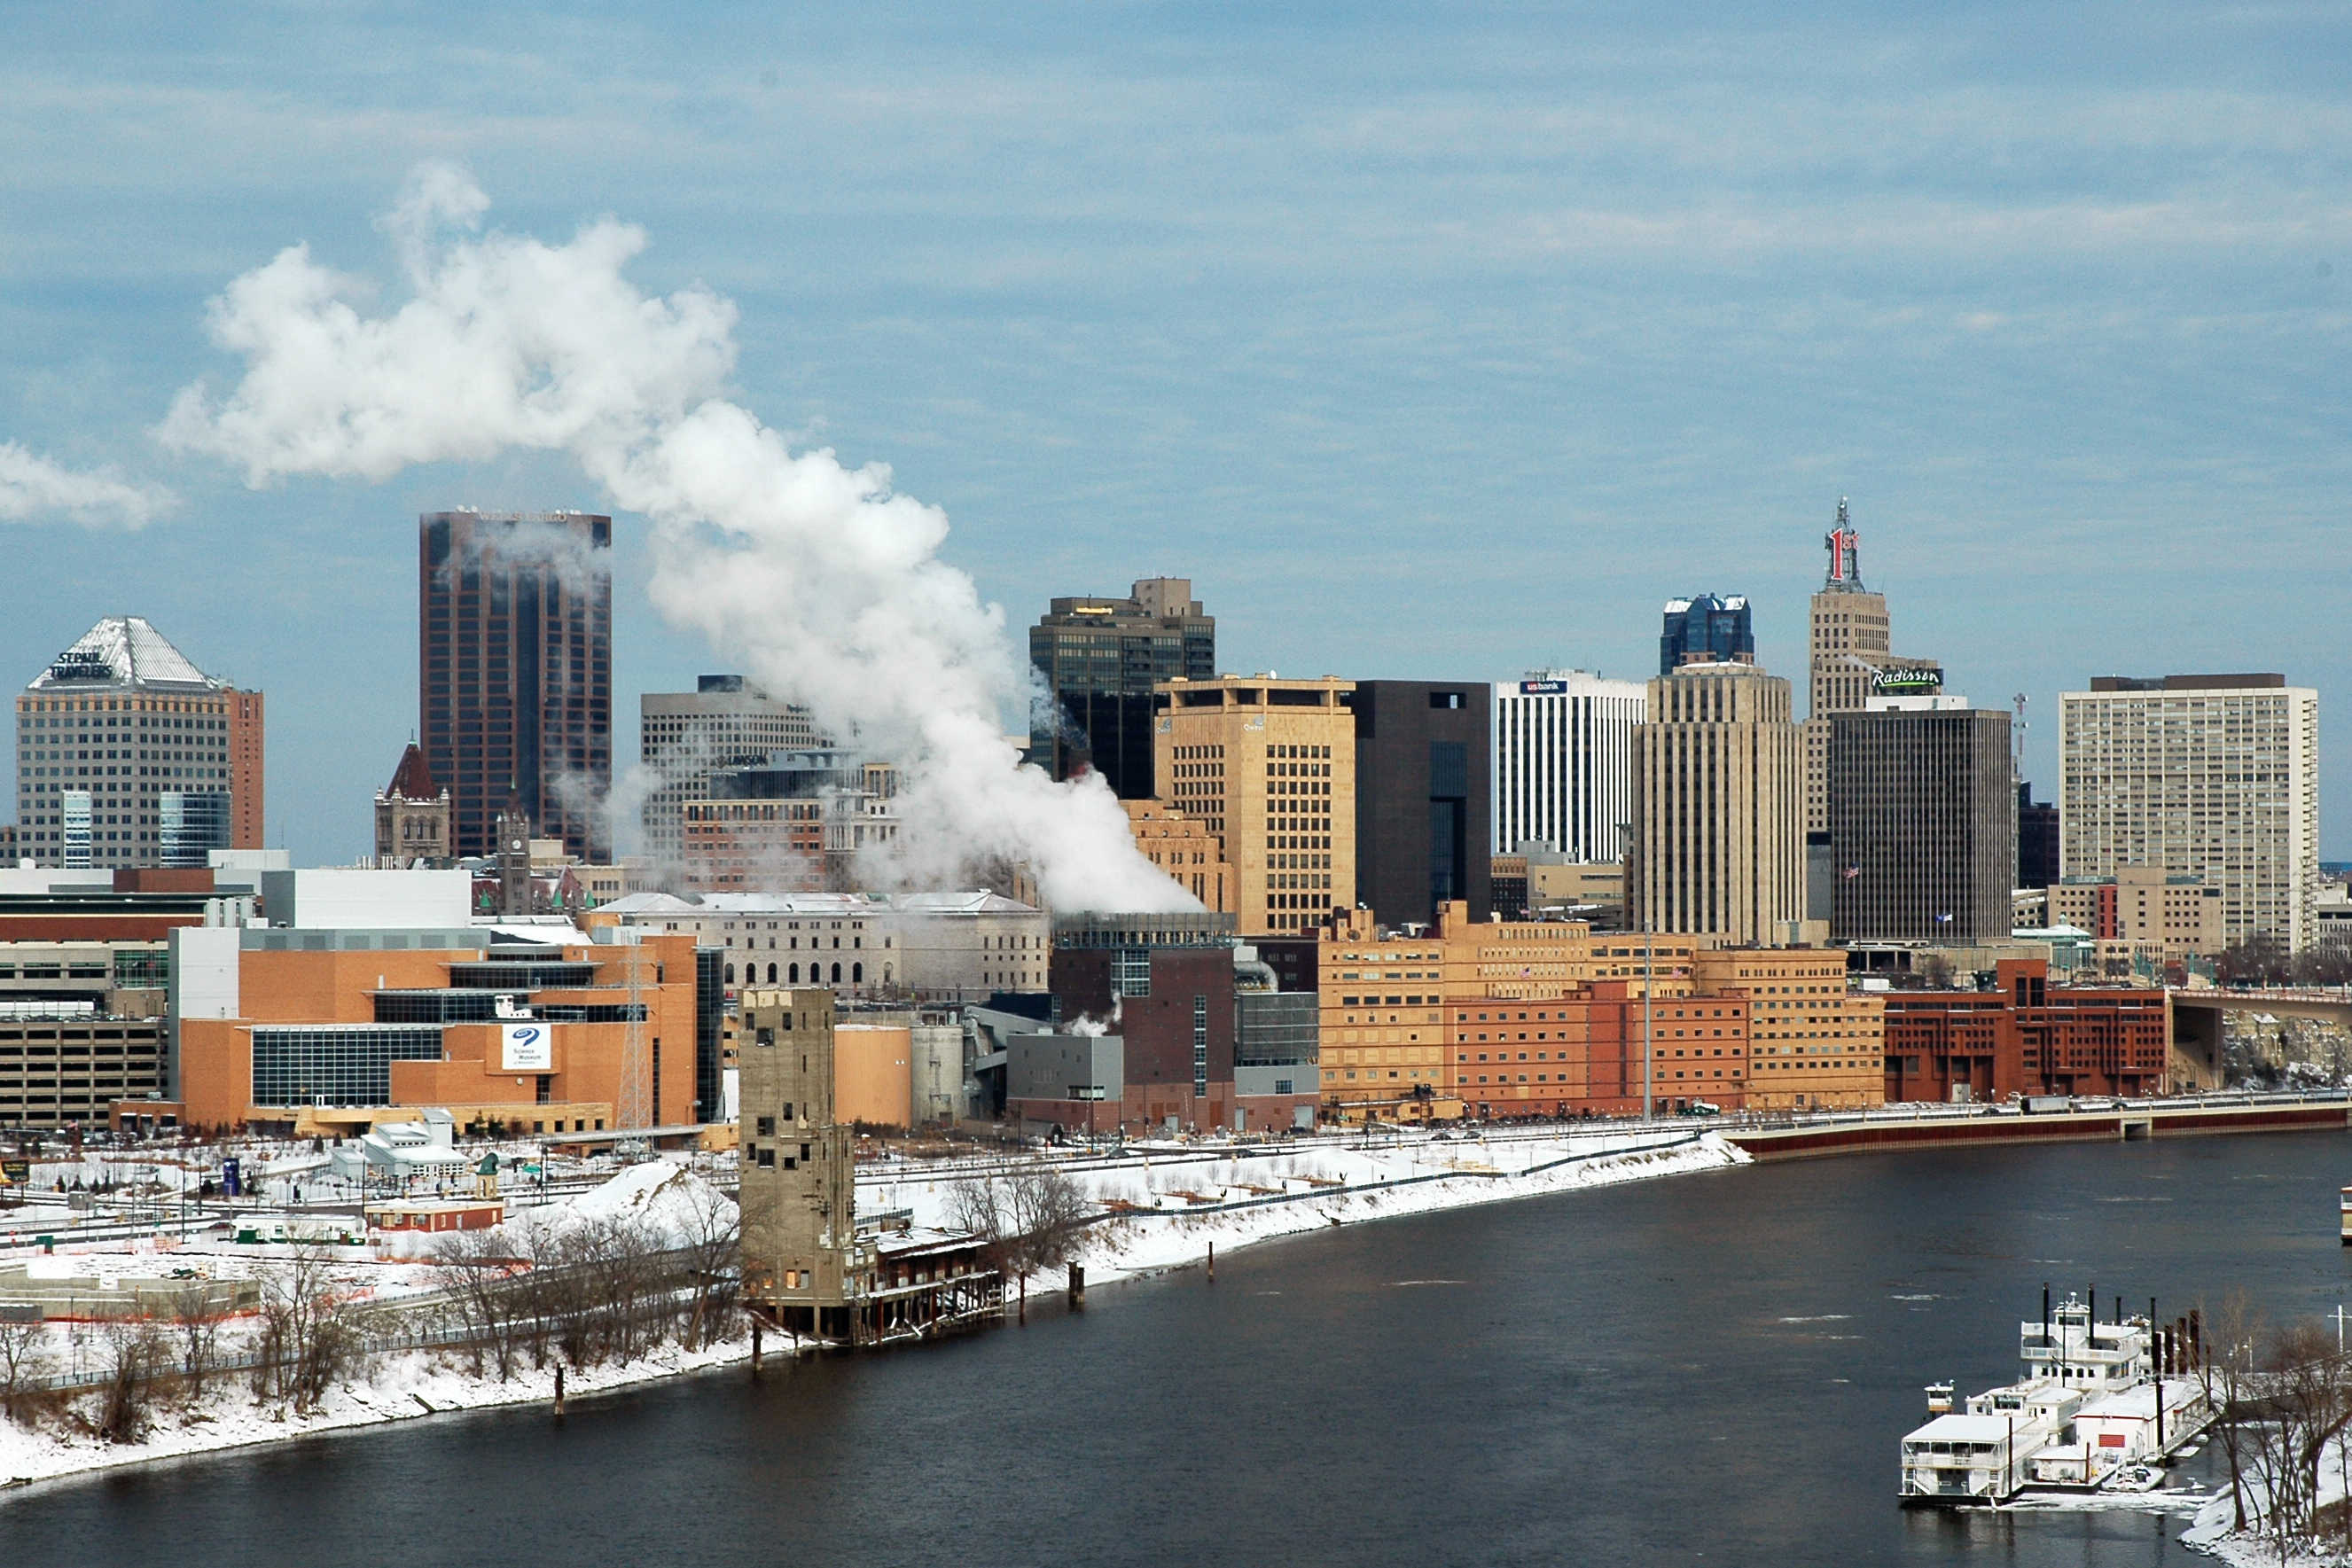 Skyline of Saint Paul, Minnesota